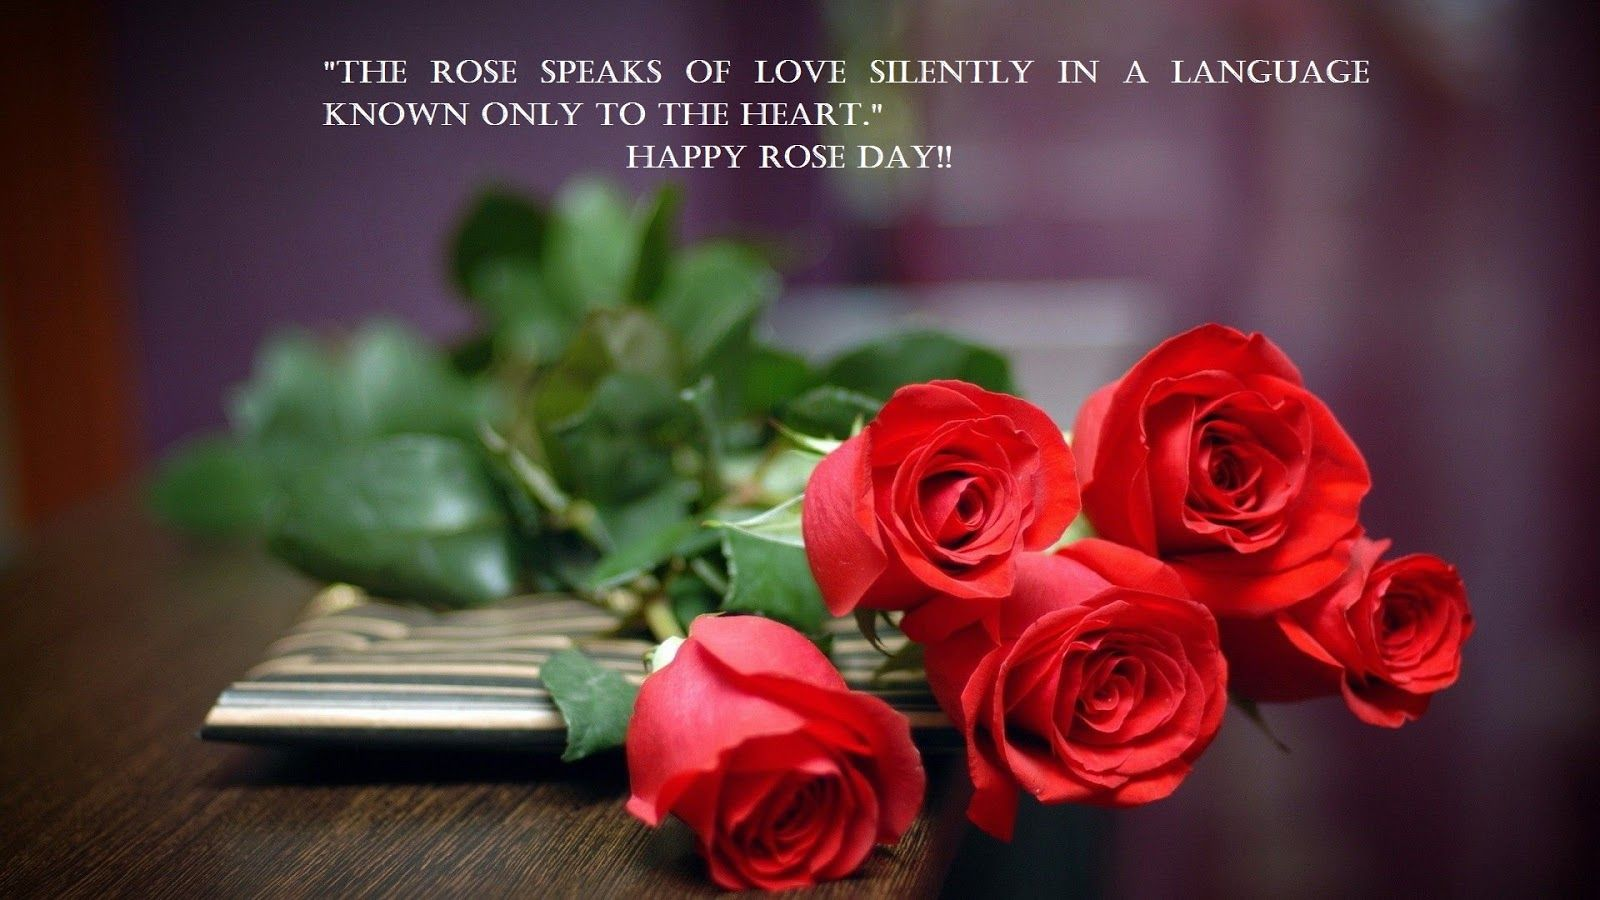 Happy Rose Day Wishes Messages Quotes And Sms For Girlfriend And Boyfriend Happy Rose Day Rose Day Wishes Happy Rose Day Quotes